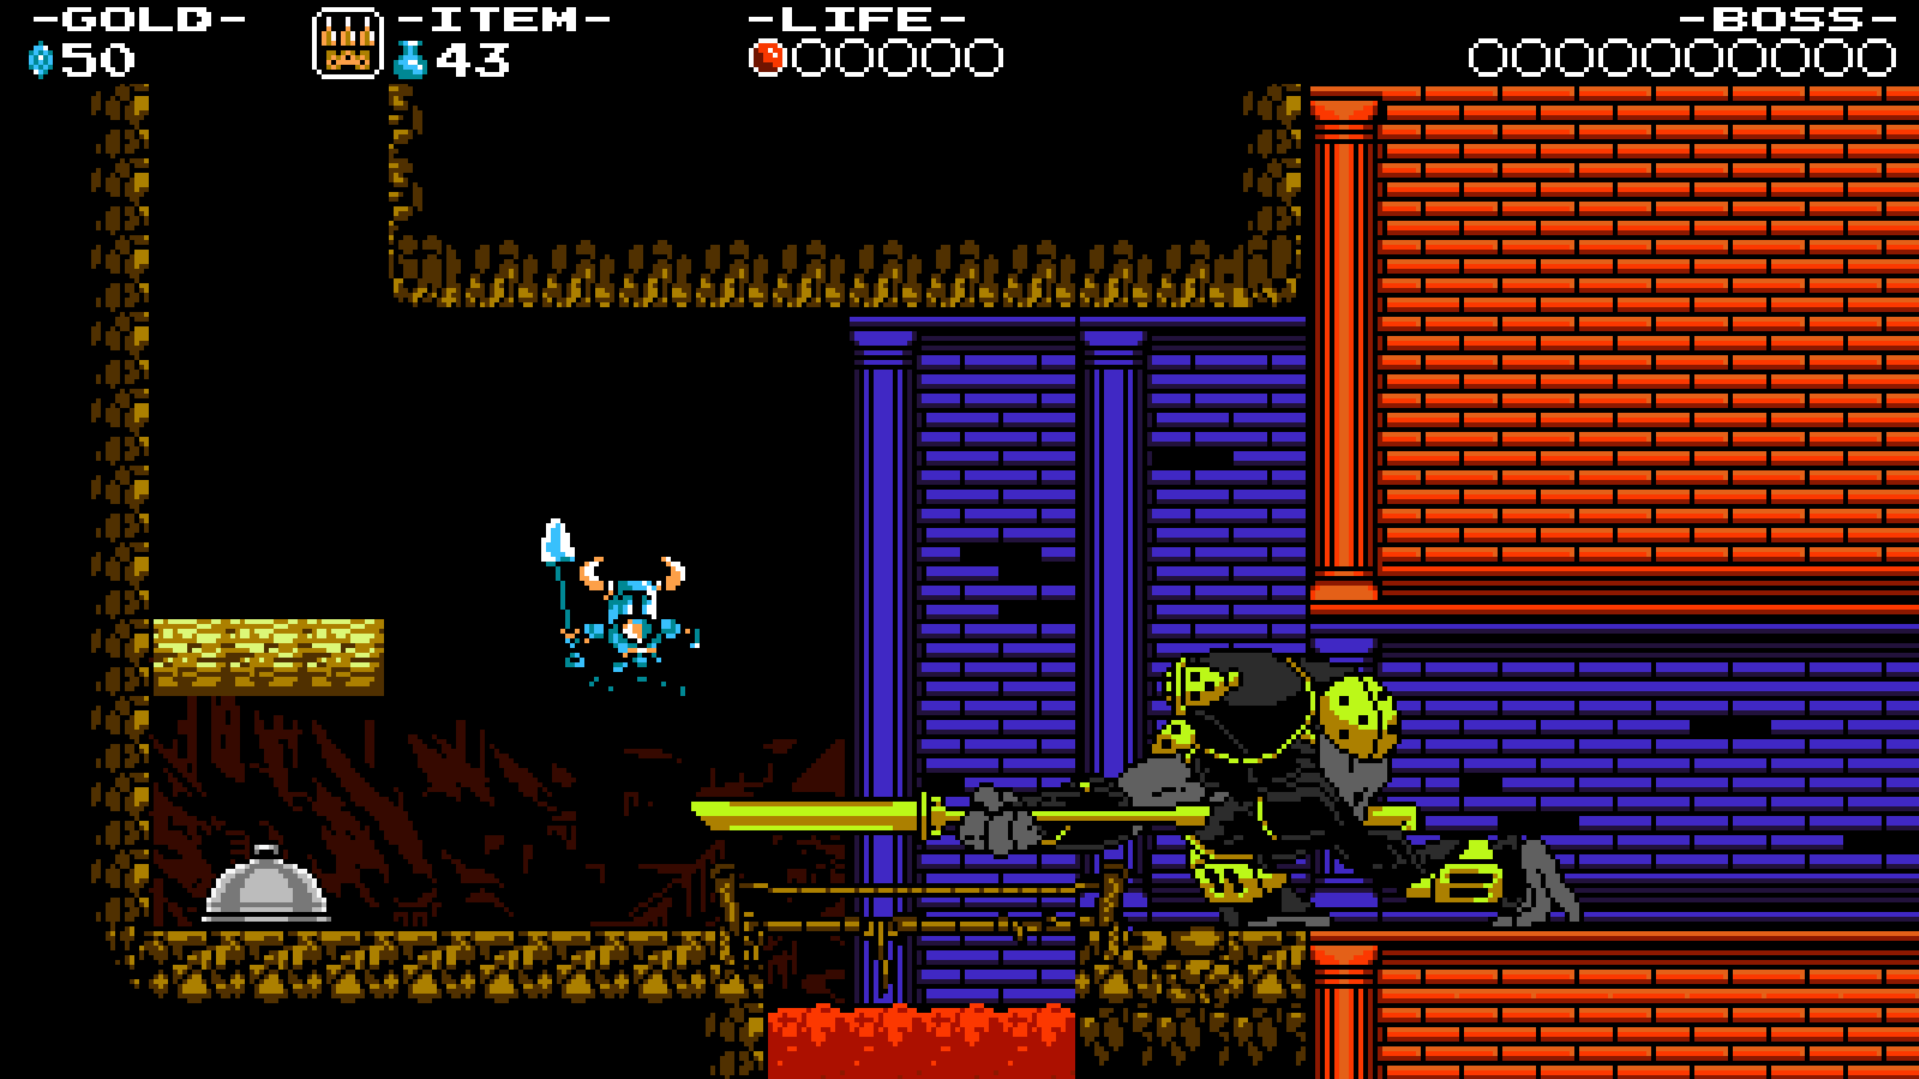 Shovel Knight, Yacht Club Games's retro-inspired chivalrous platformer, will be hitting 3DS on June 26th